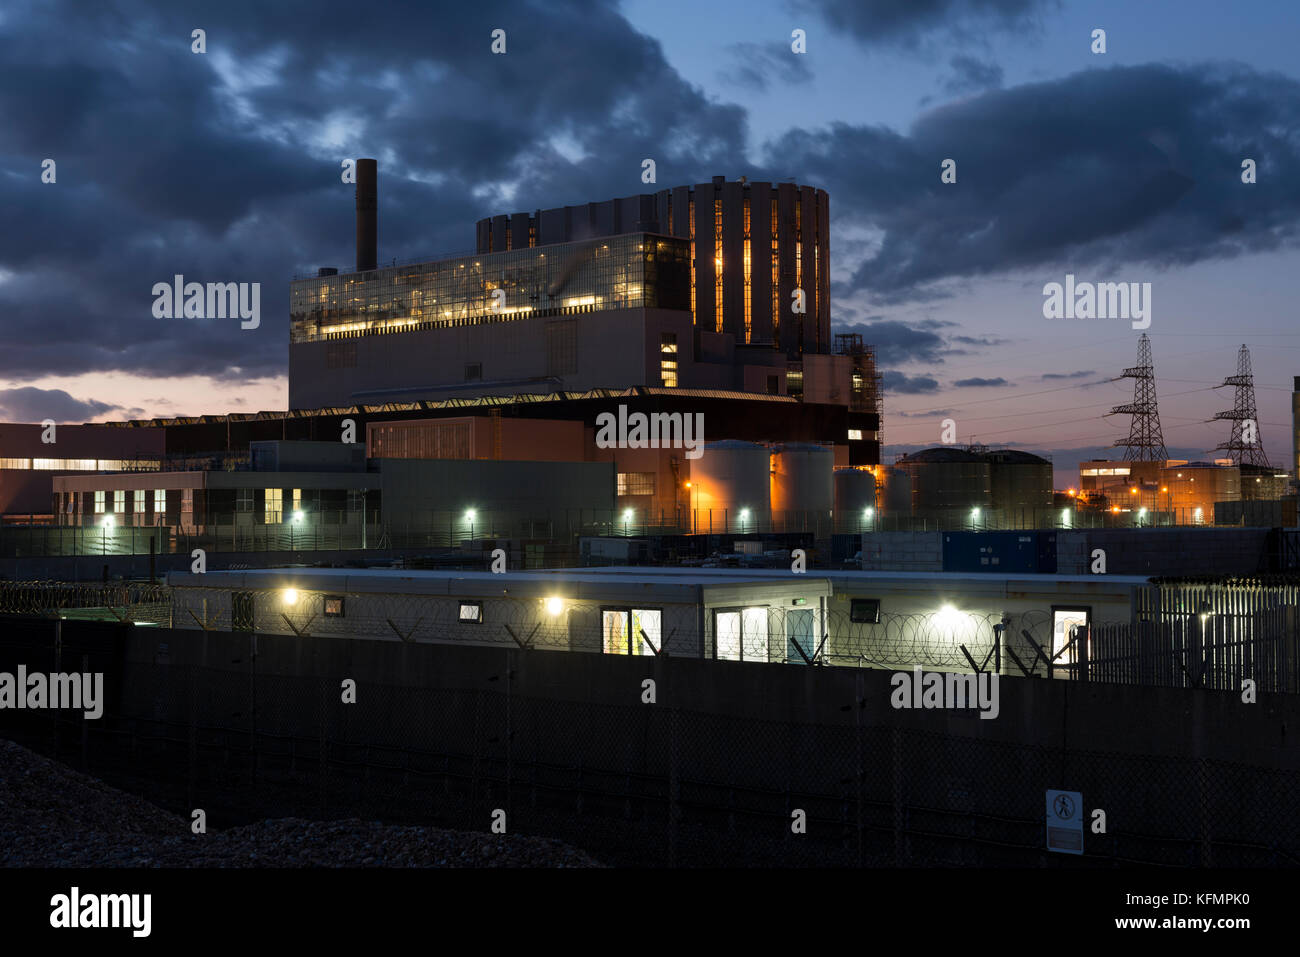 Dungeness B nuclear power station EDF energy - Stock Image